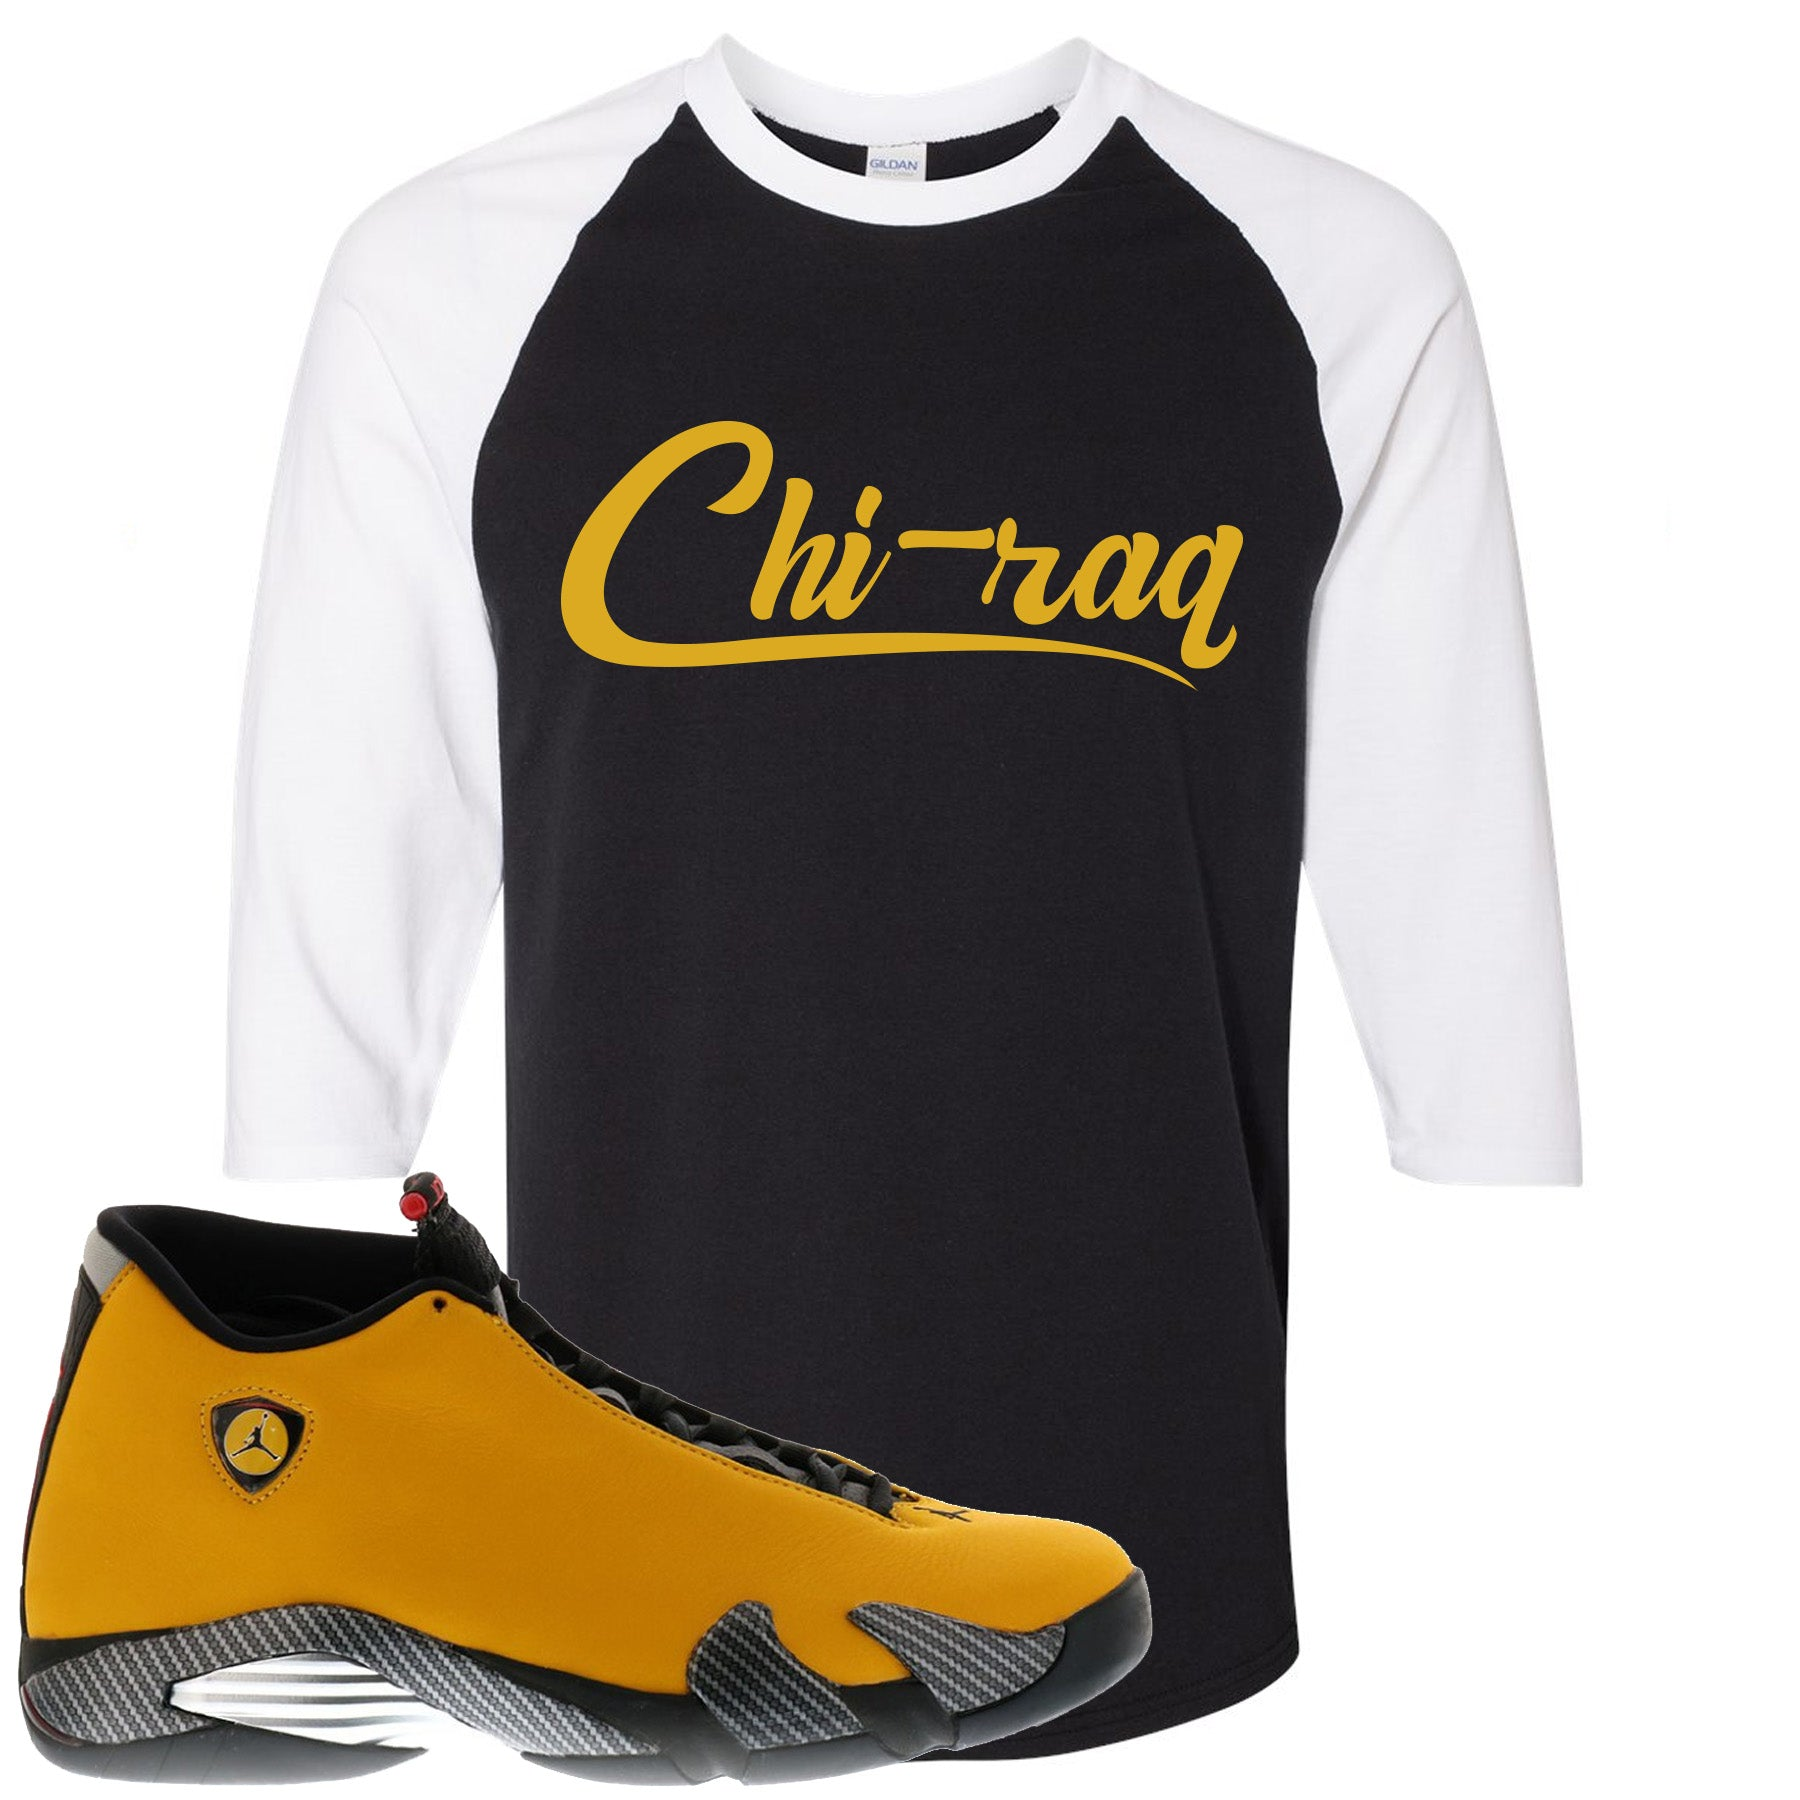 finest selection 7d8dd 08432 Air Jordan 14 Reverse Ferrari Sneaker Match Chi-raq Black and White Raglan  T-Shirt